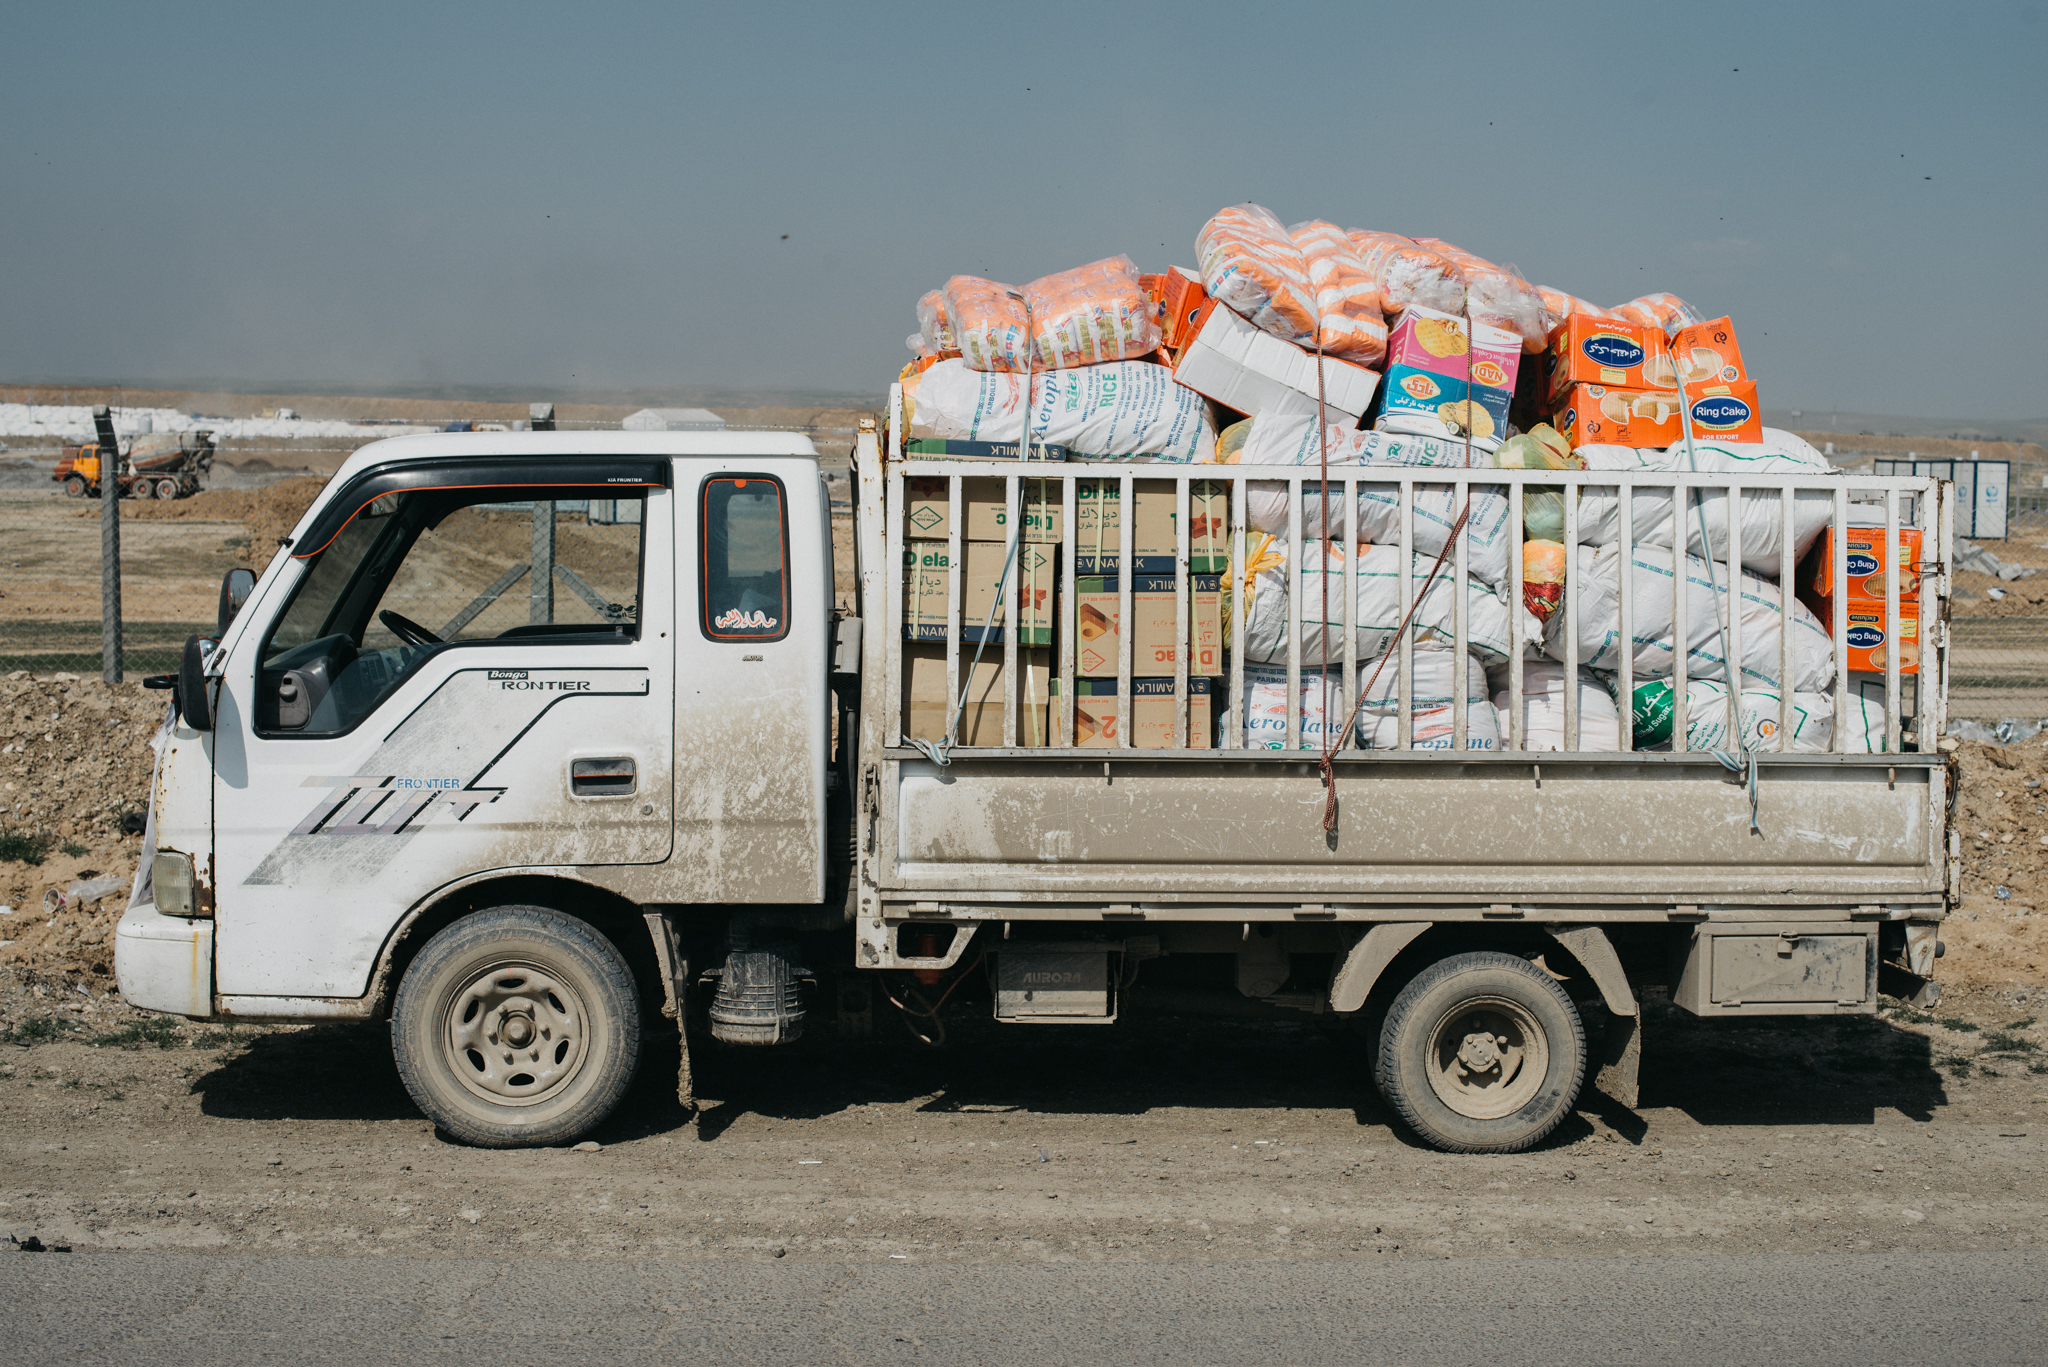 On our first day we brought 5 trucks full of emergency relief to Western Mosul.